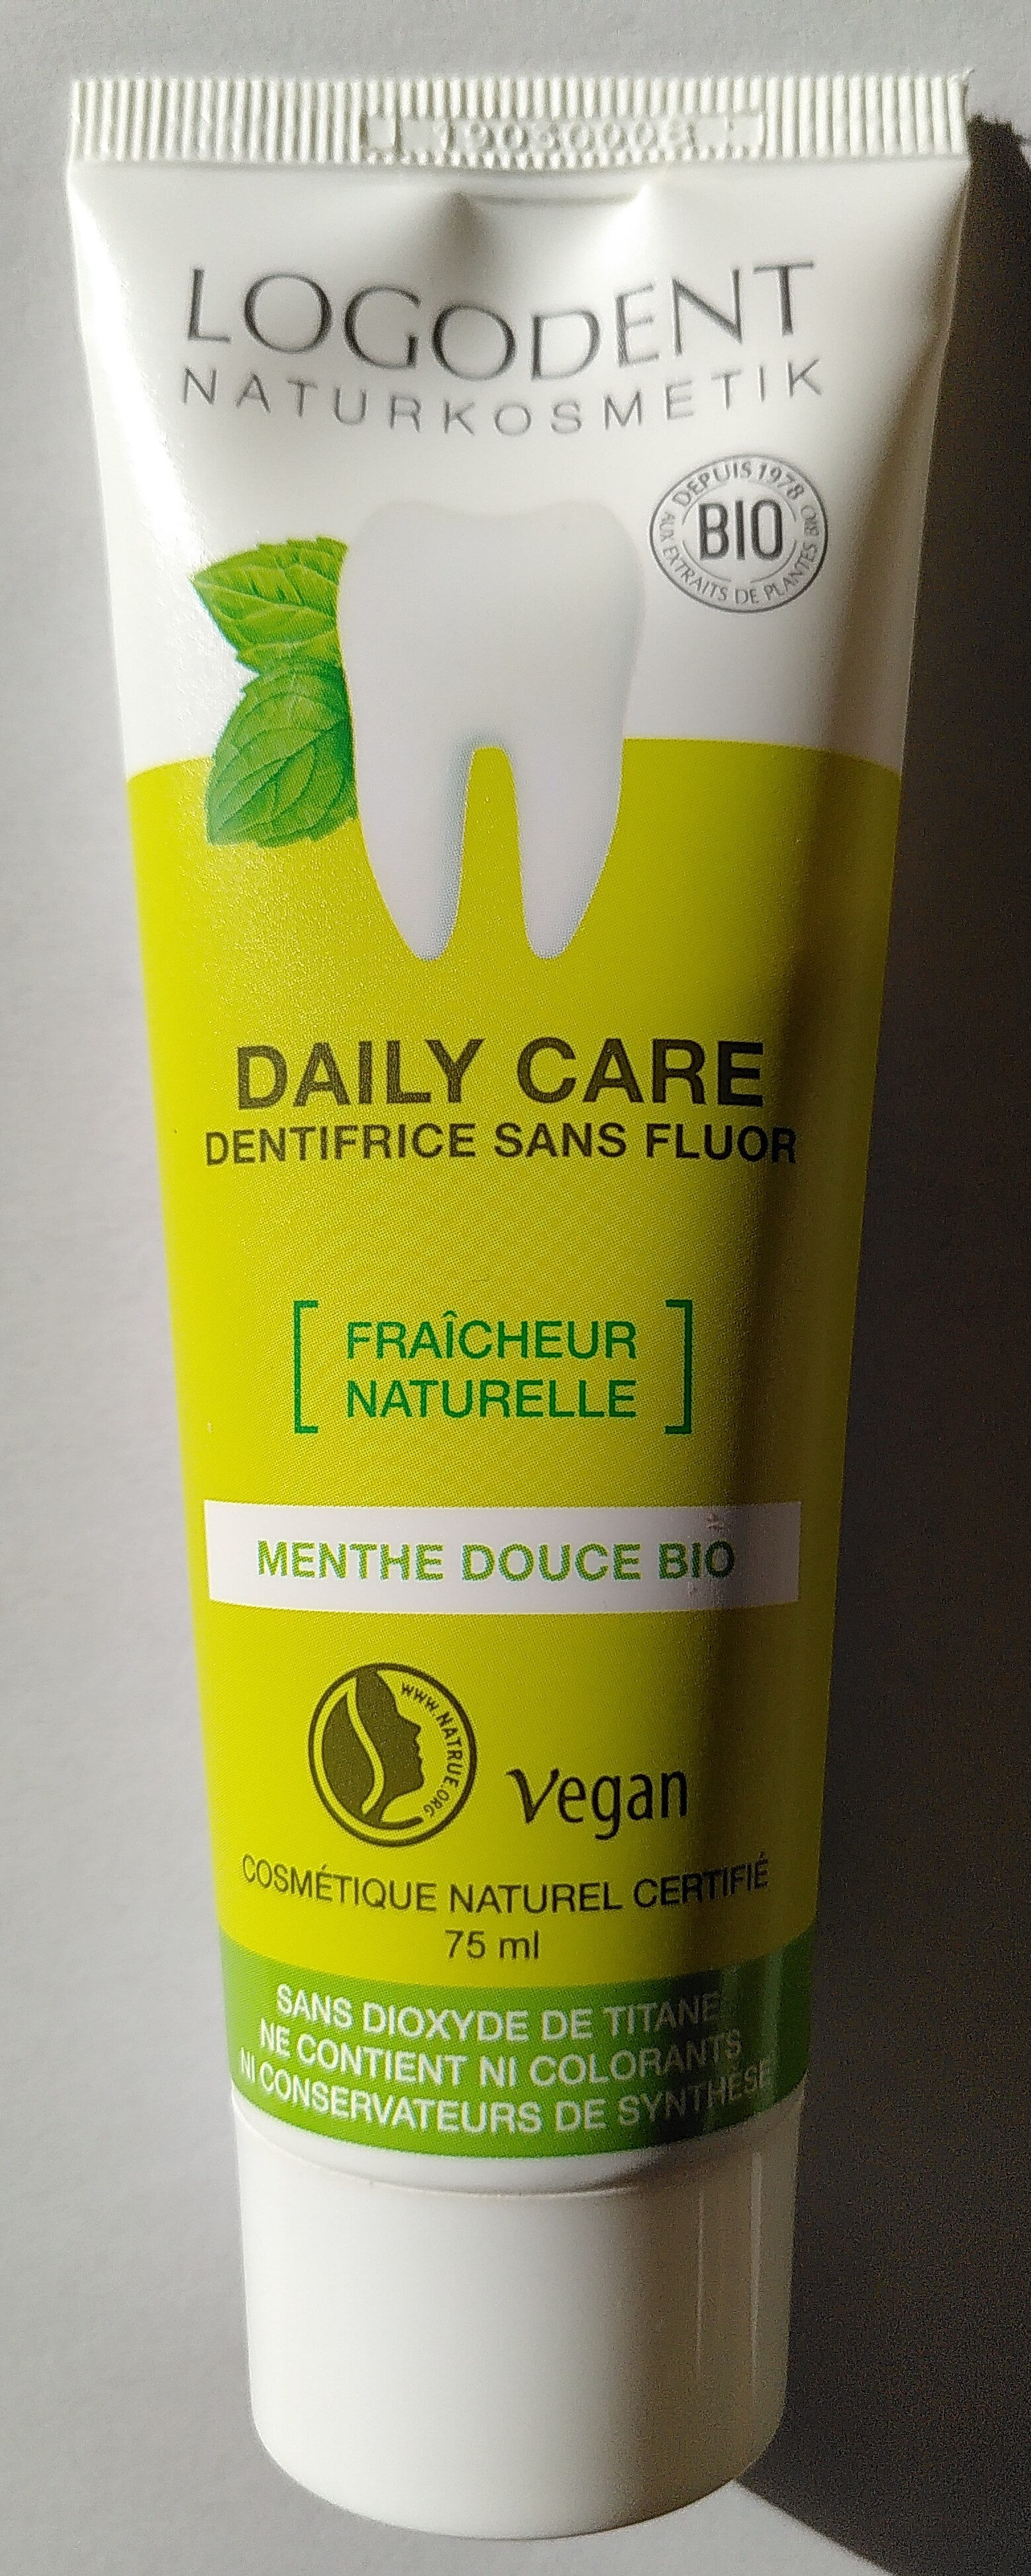 Daily Care - Dentifrice sans fluor - Product - fr